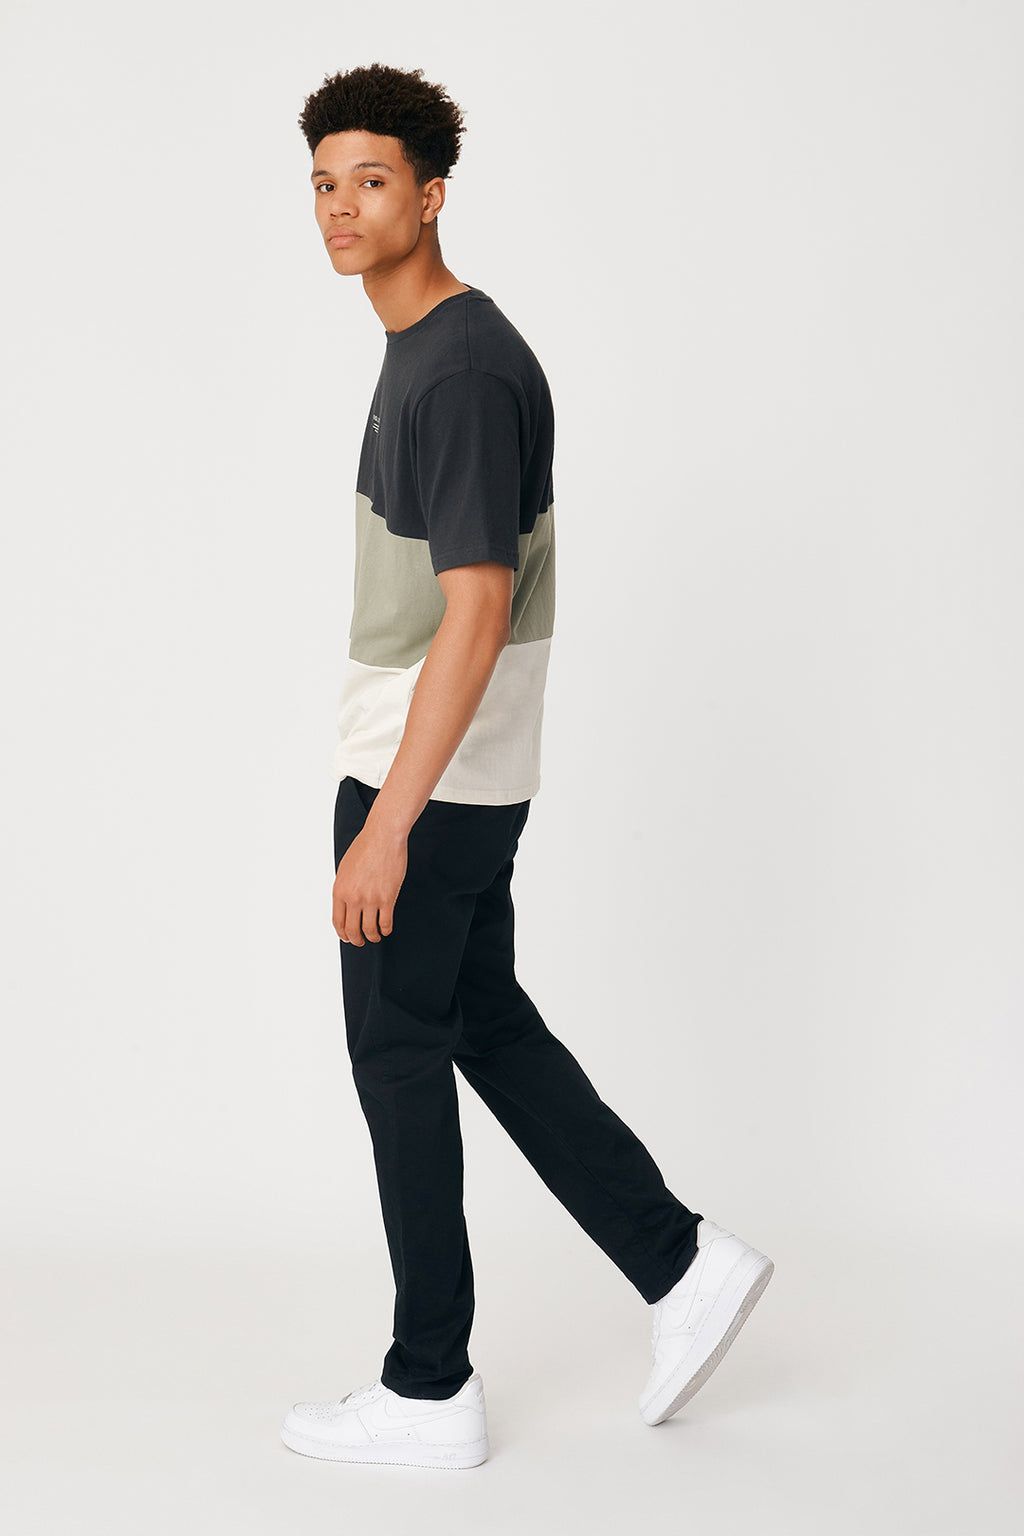 The Van Ness Tee - Light Sage - Roler Clothing